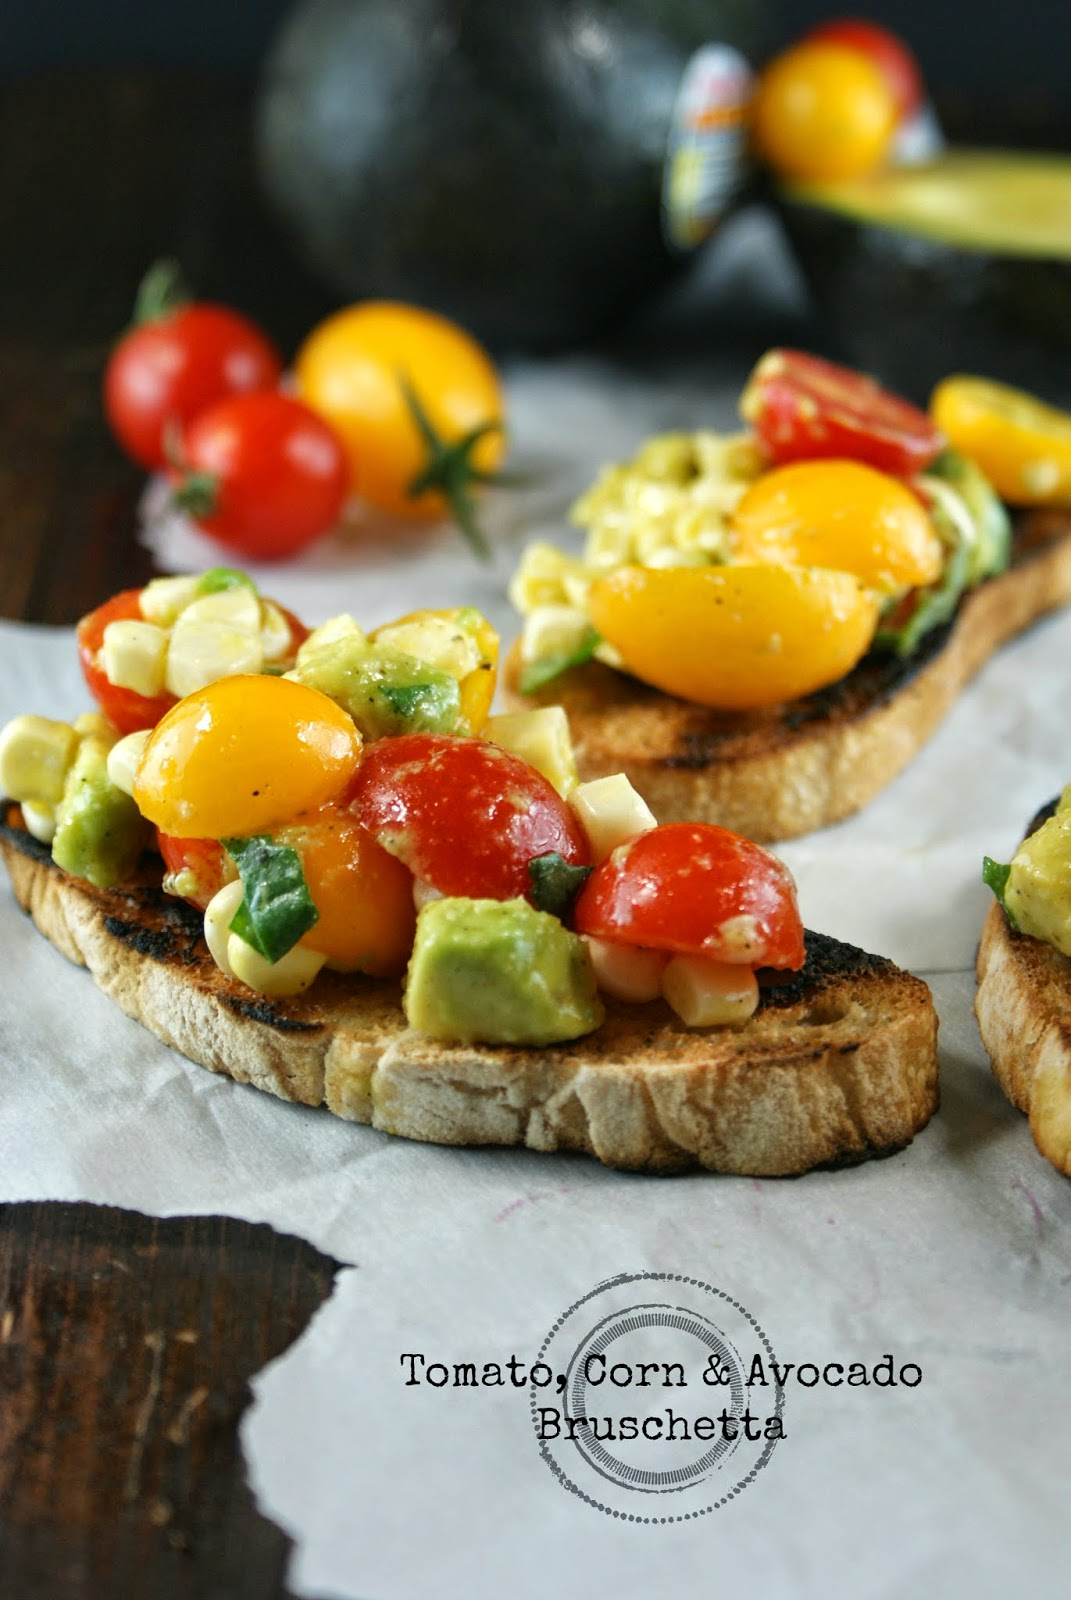 tomato, corn & avocado bruschetta | friday night bites